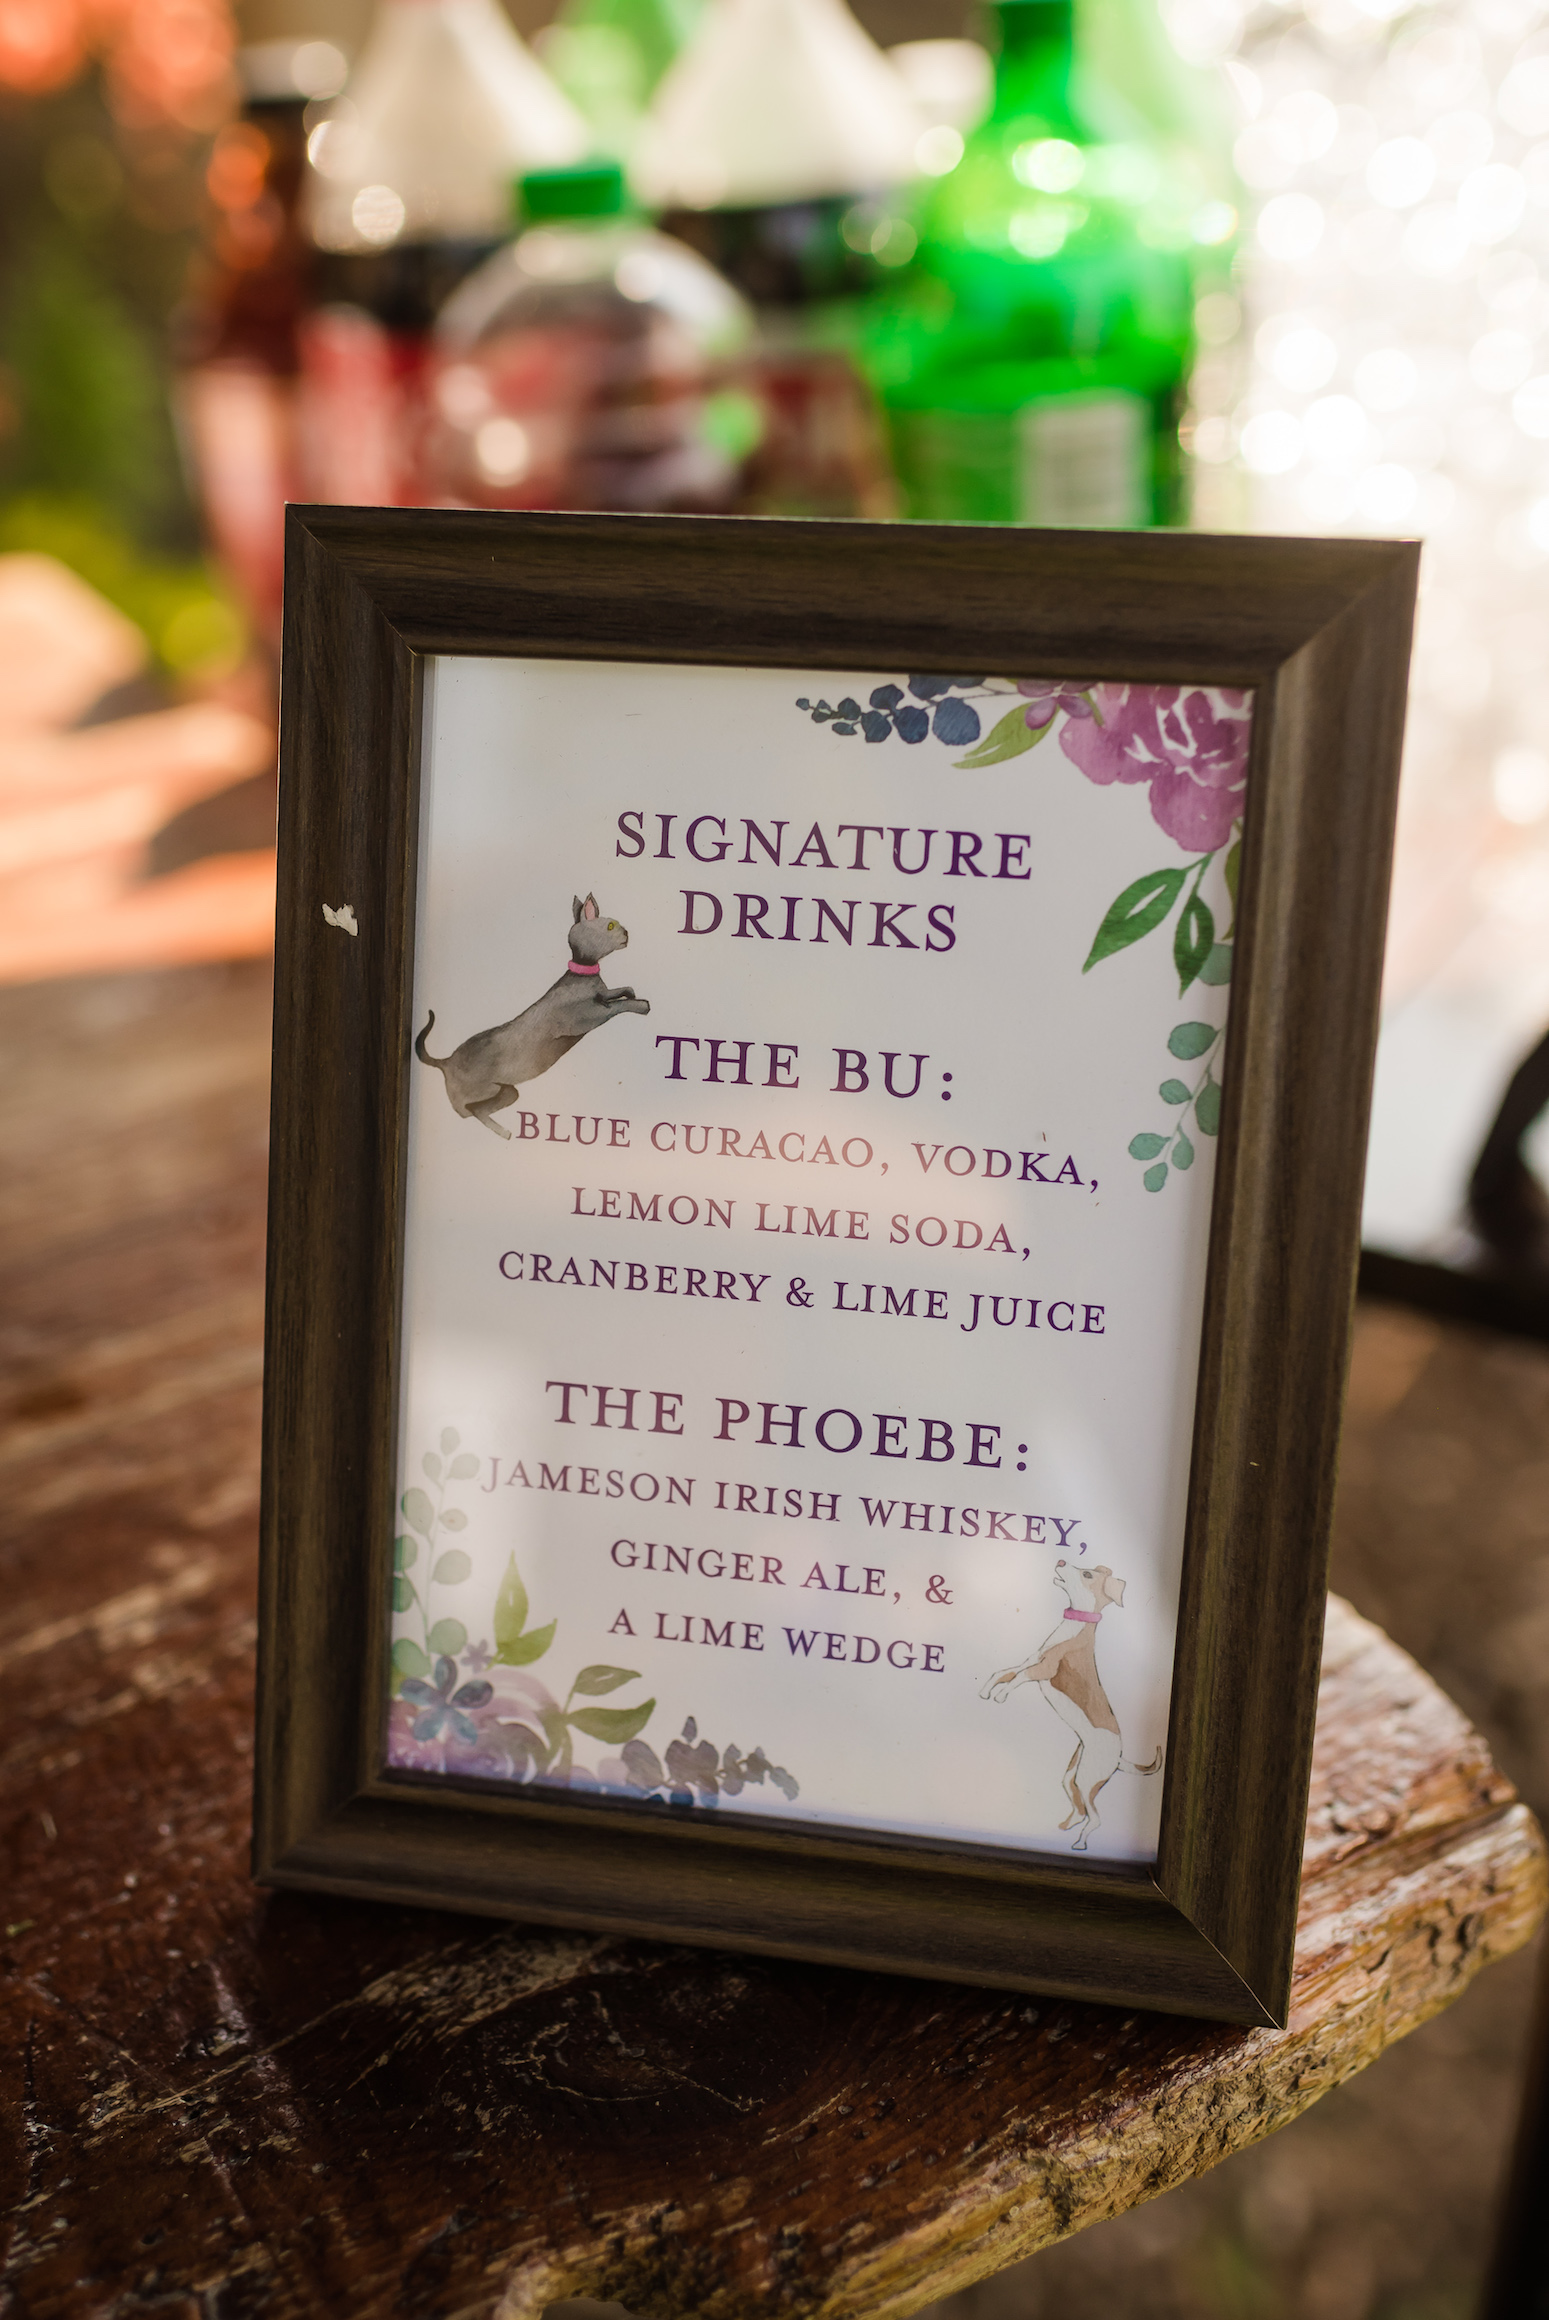 Wedding Signature Drinks.Wedding Signature Drink Sign With Dog And Cat Leah E Moss Designs